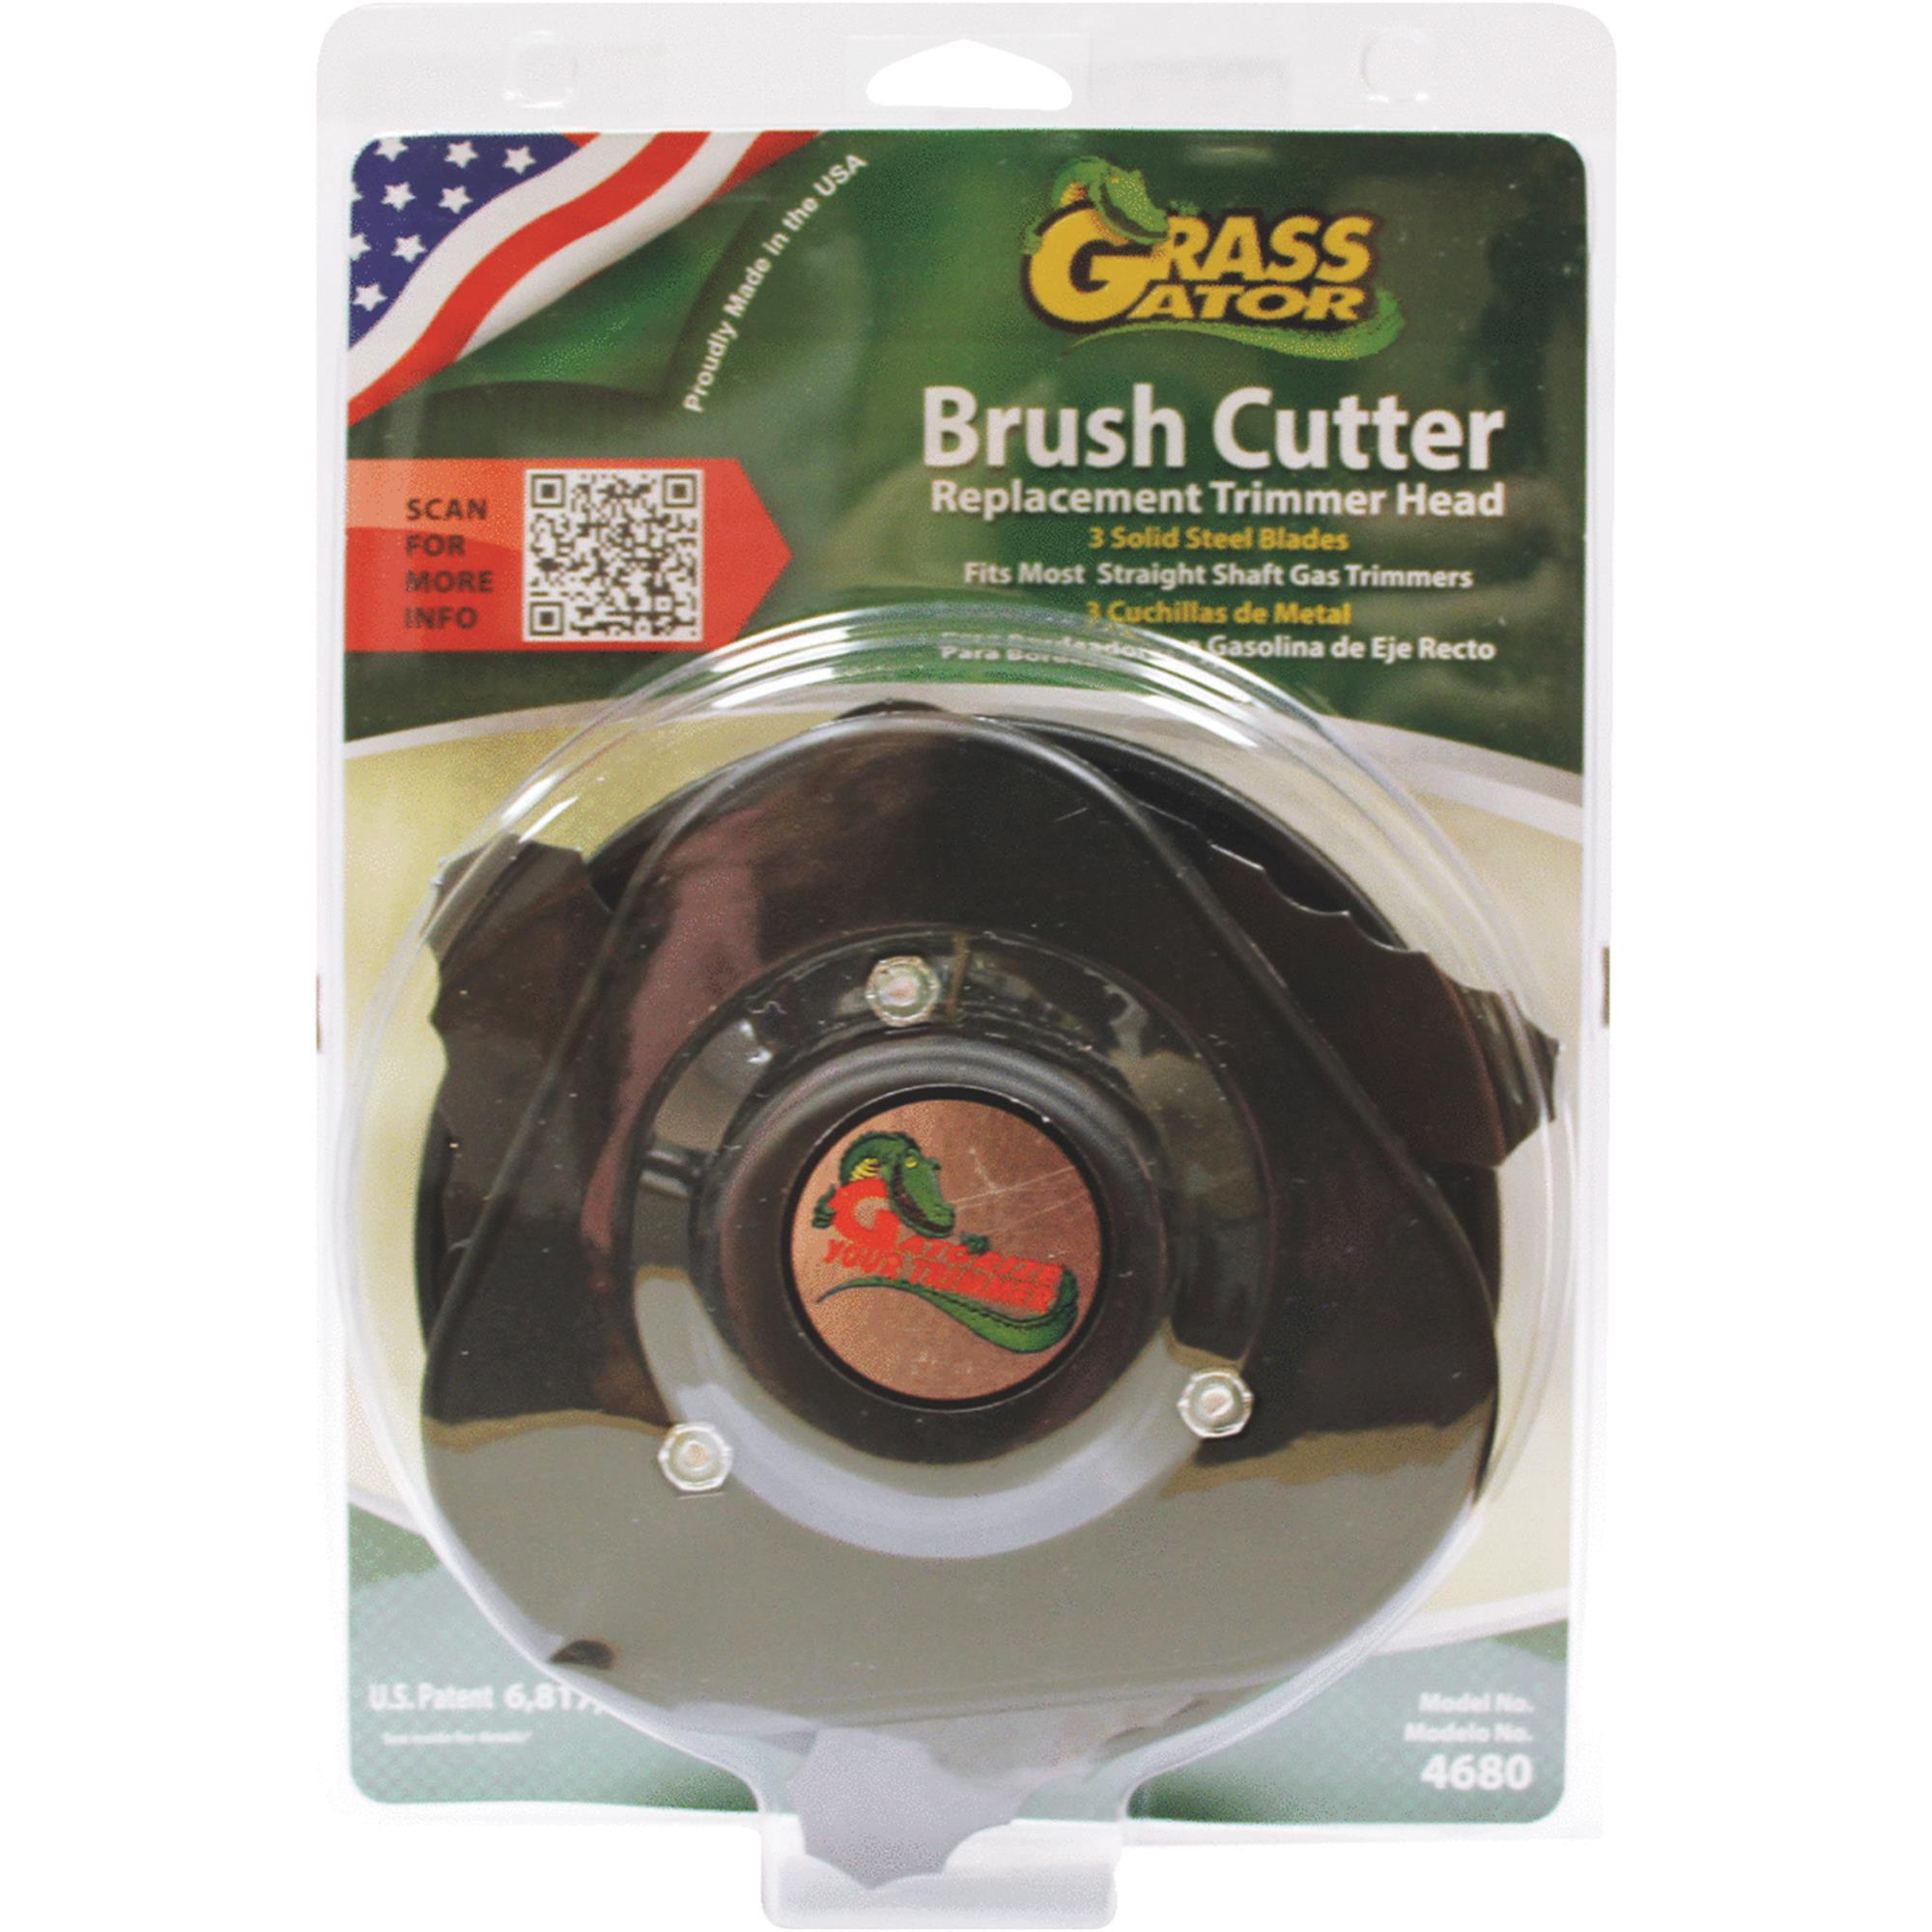 Grass Gator 4680-6 Brush Cutter Head With Metal Blades